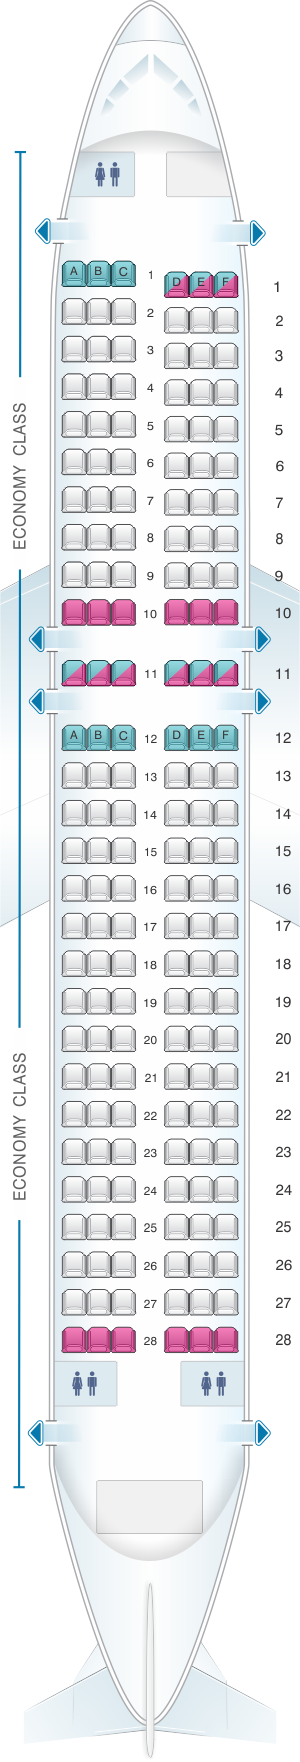 Seat map for Air New Zealand Airbus A320 International